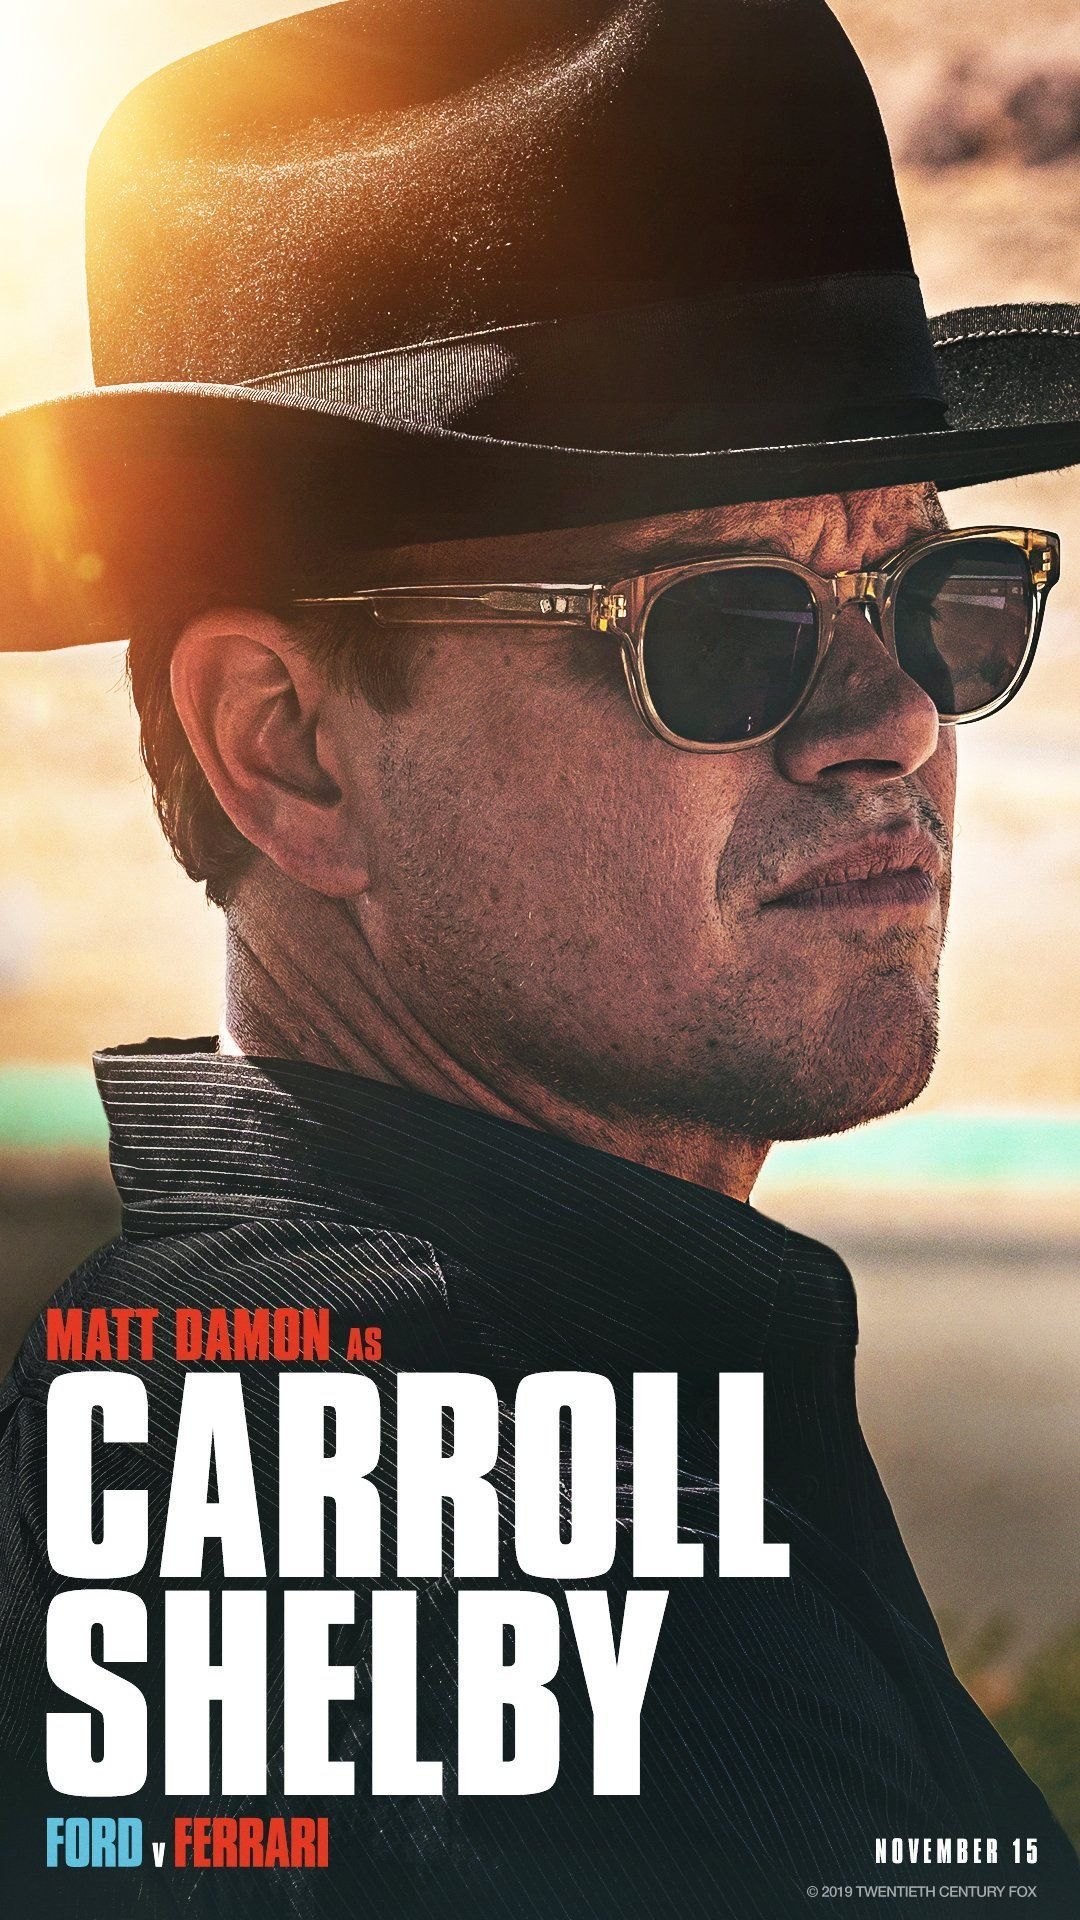 Matt Damon Sunglasses In Ford V Ferrari With Christian Bale In 2020 Matt Damon Ferrari Carroll Shelby